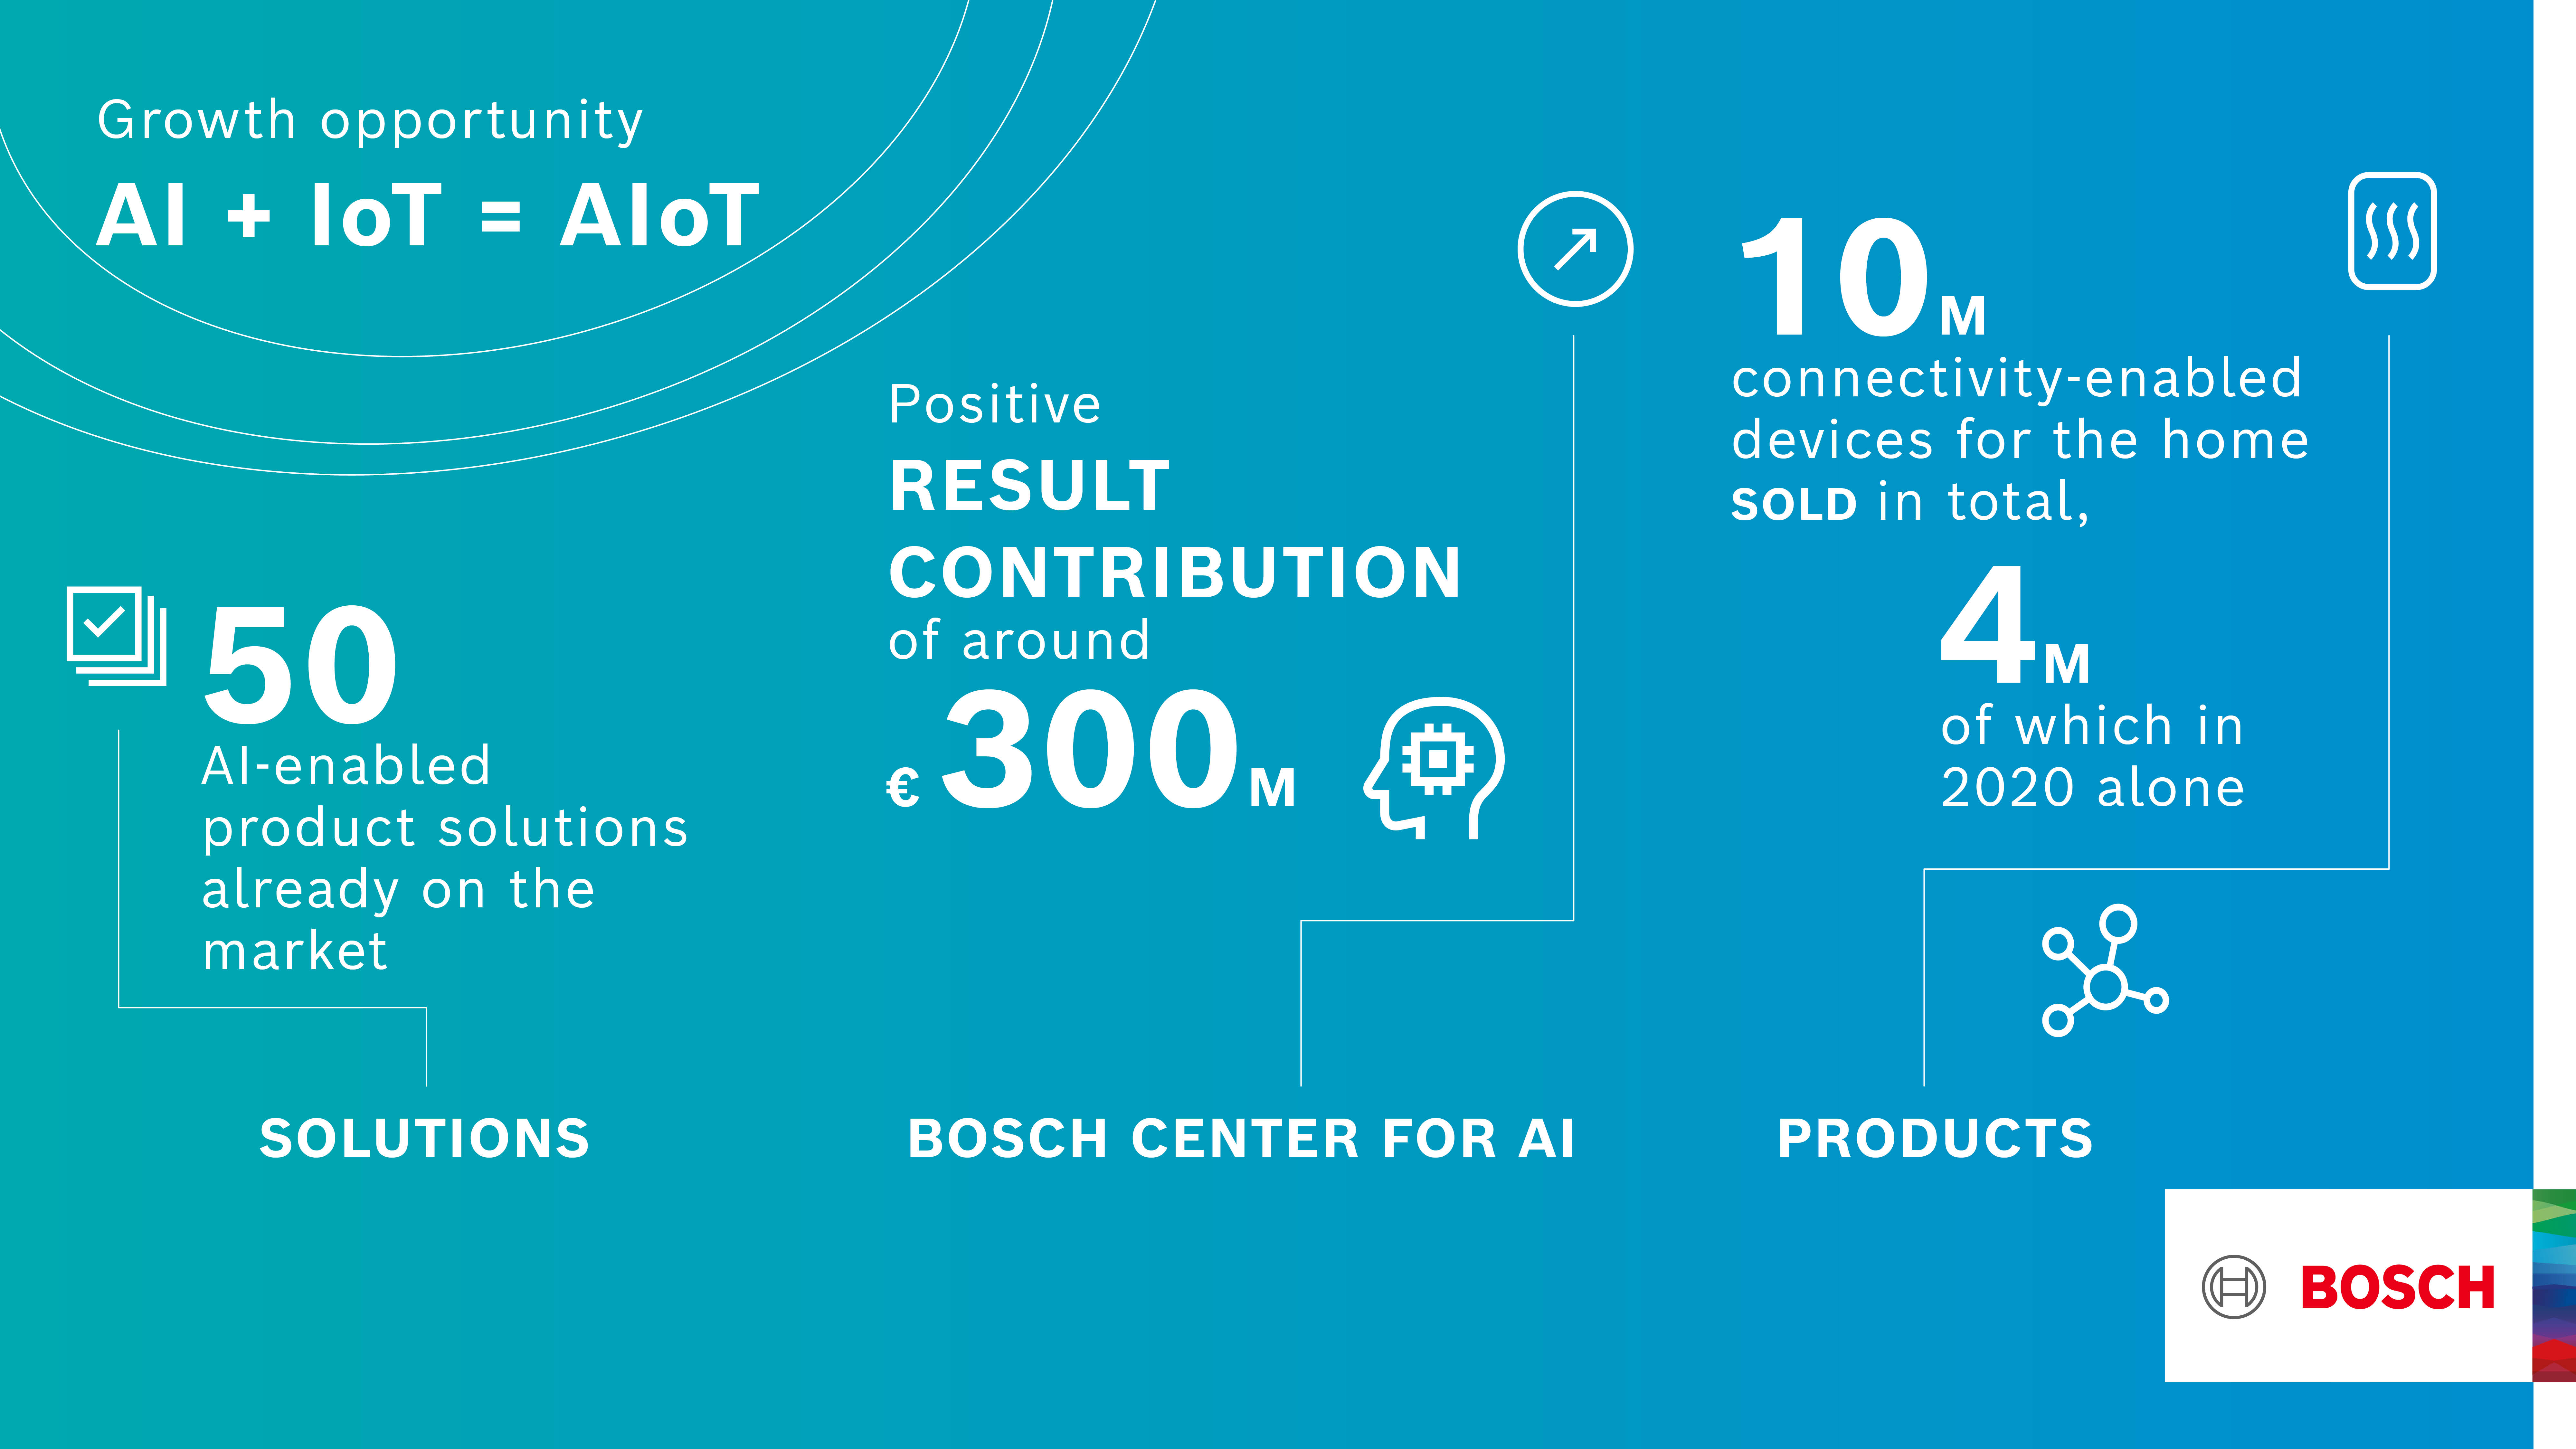 AIoT: Bosch combines connectivity (the internet of things, IoT) and artificial intelligence (AI)